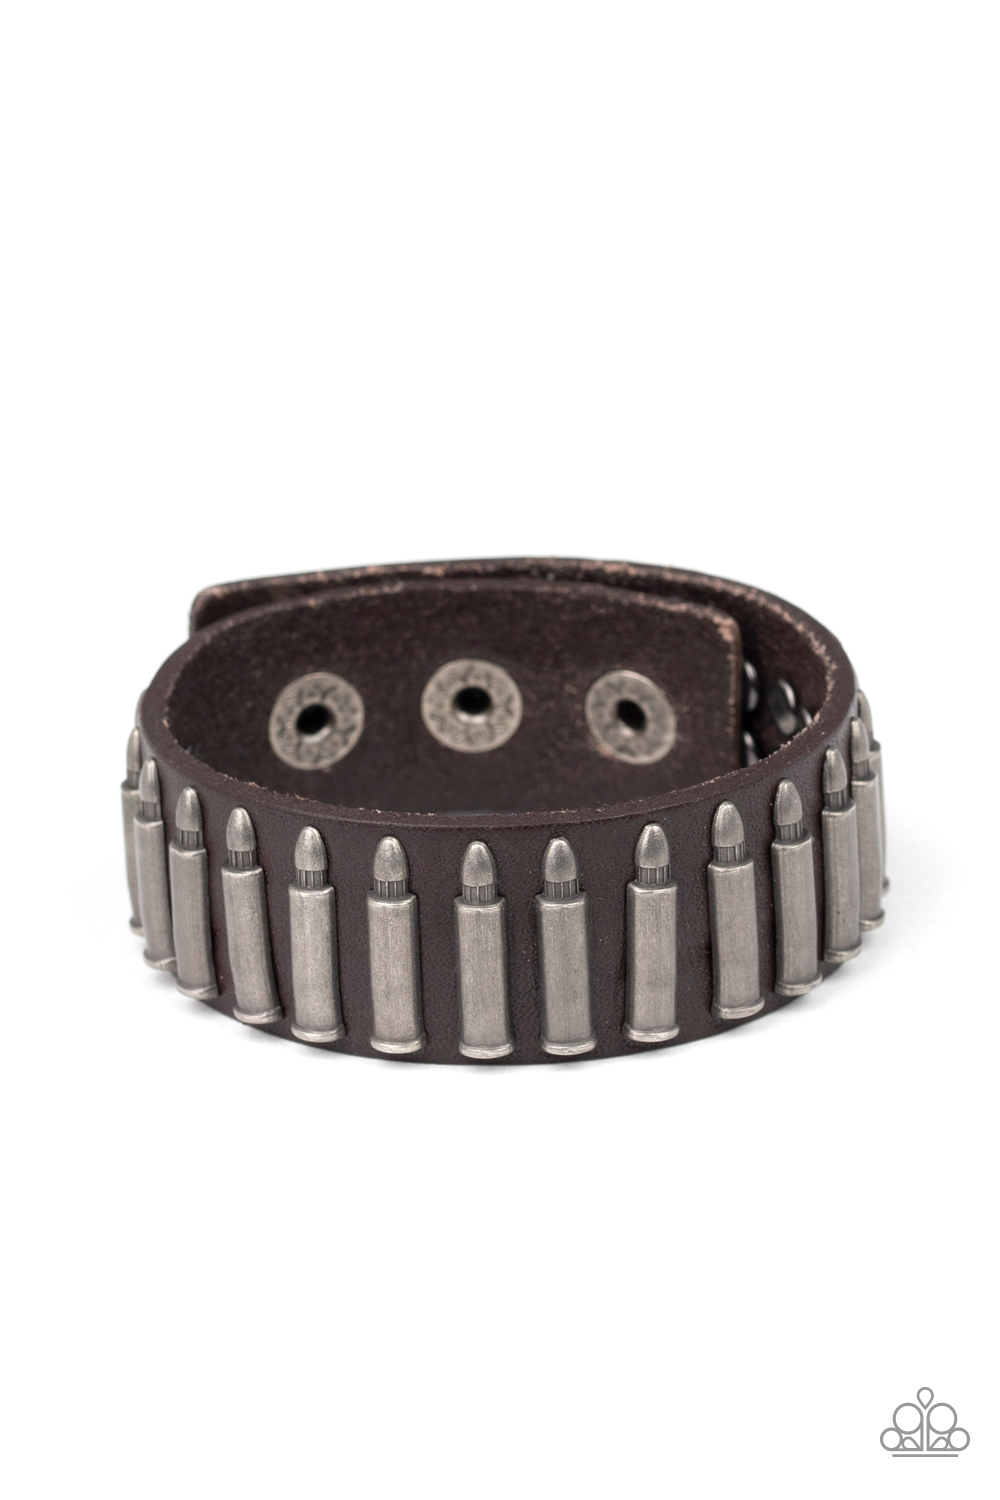 Paparazzi Accessories:  Armed and Dangerous - Brown (1104)